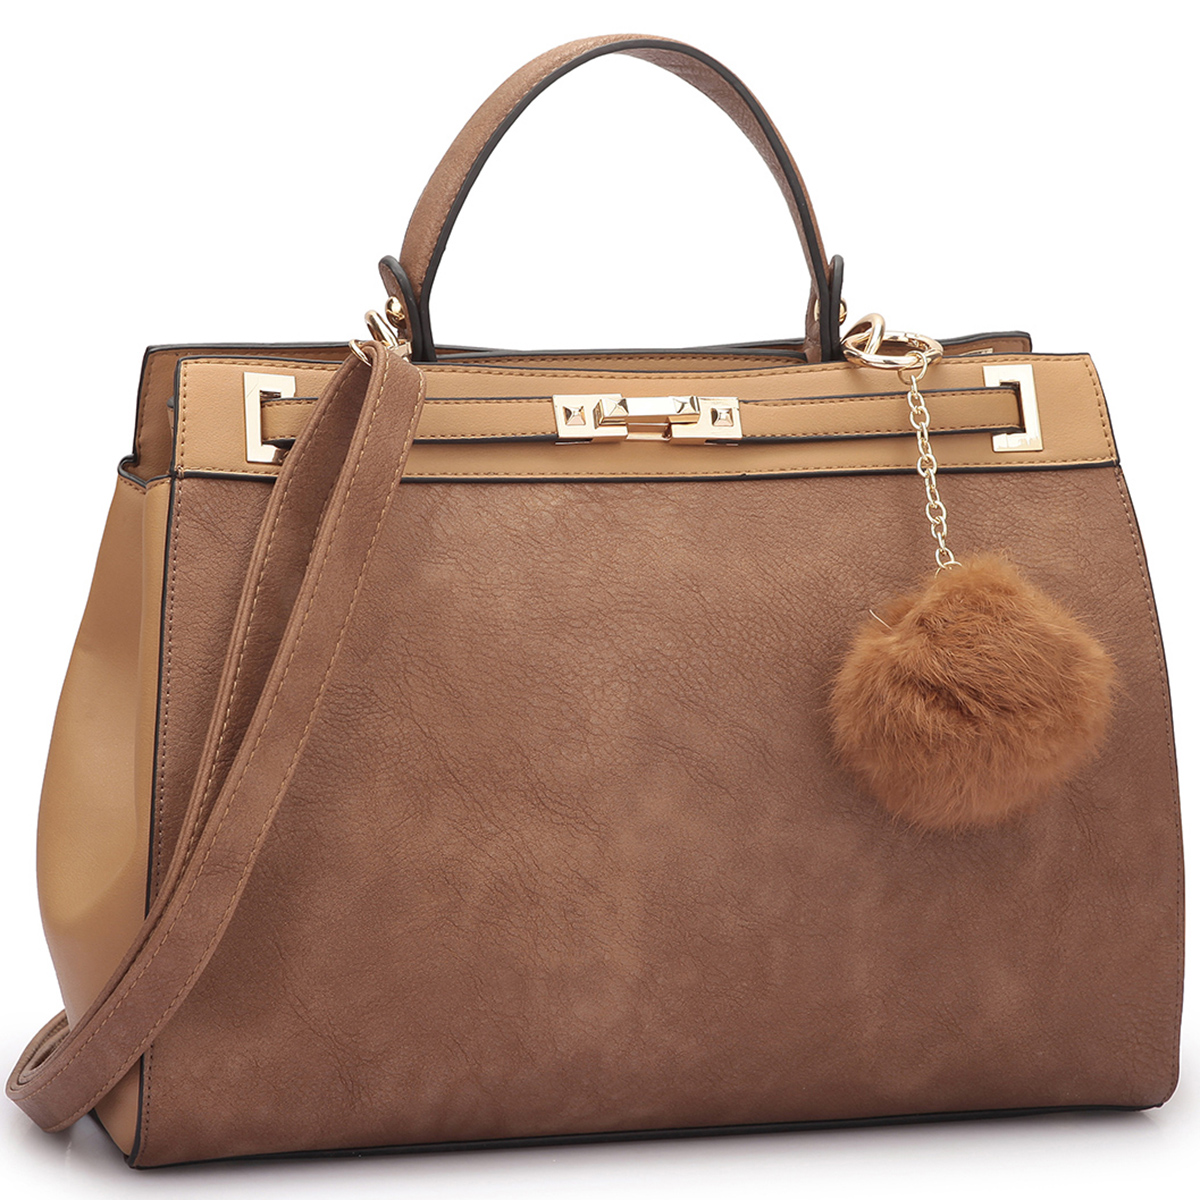 Dasein® Satchel with Padlock and Decorative PomPom